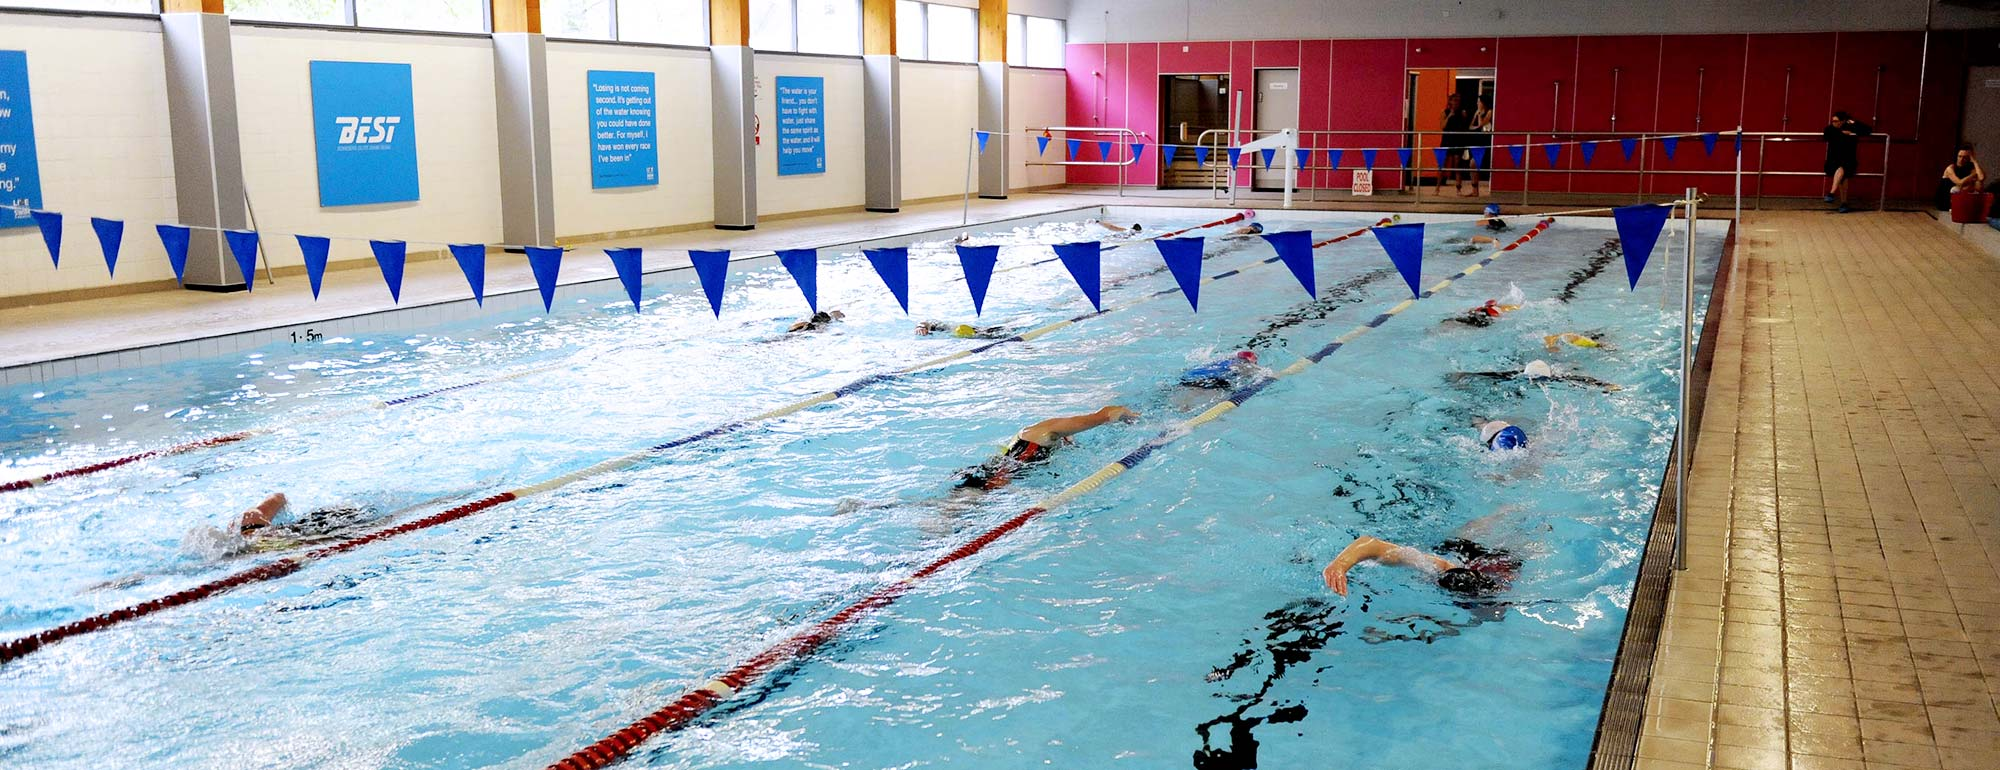 health-swimming-pools-Selkirk-Leisure-Centre